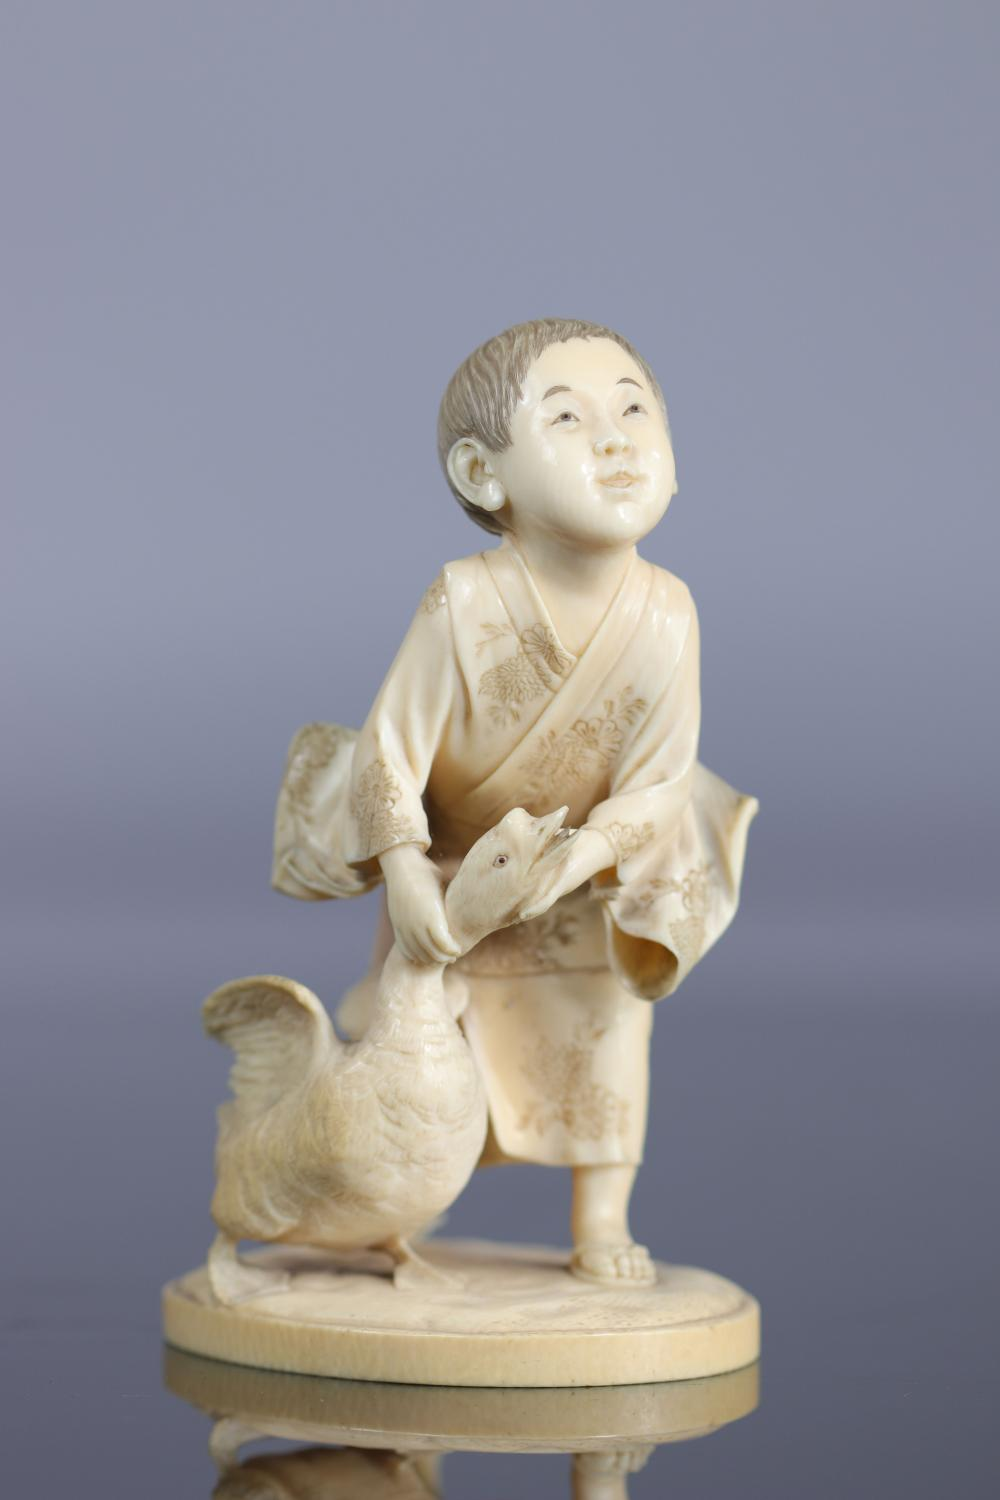 Japan Okimono carved of a young boy with a goose 19th Sizes: H=140mm L=90mm Weight (K): 0,